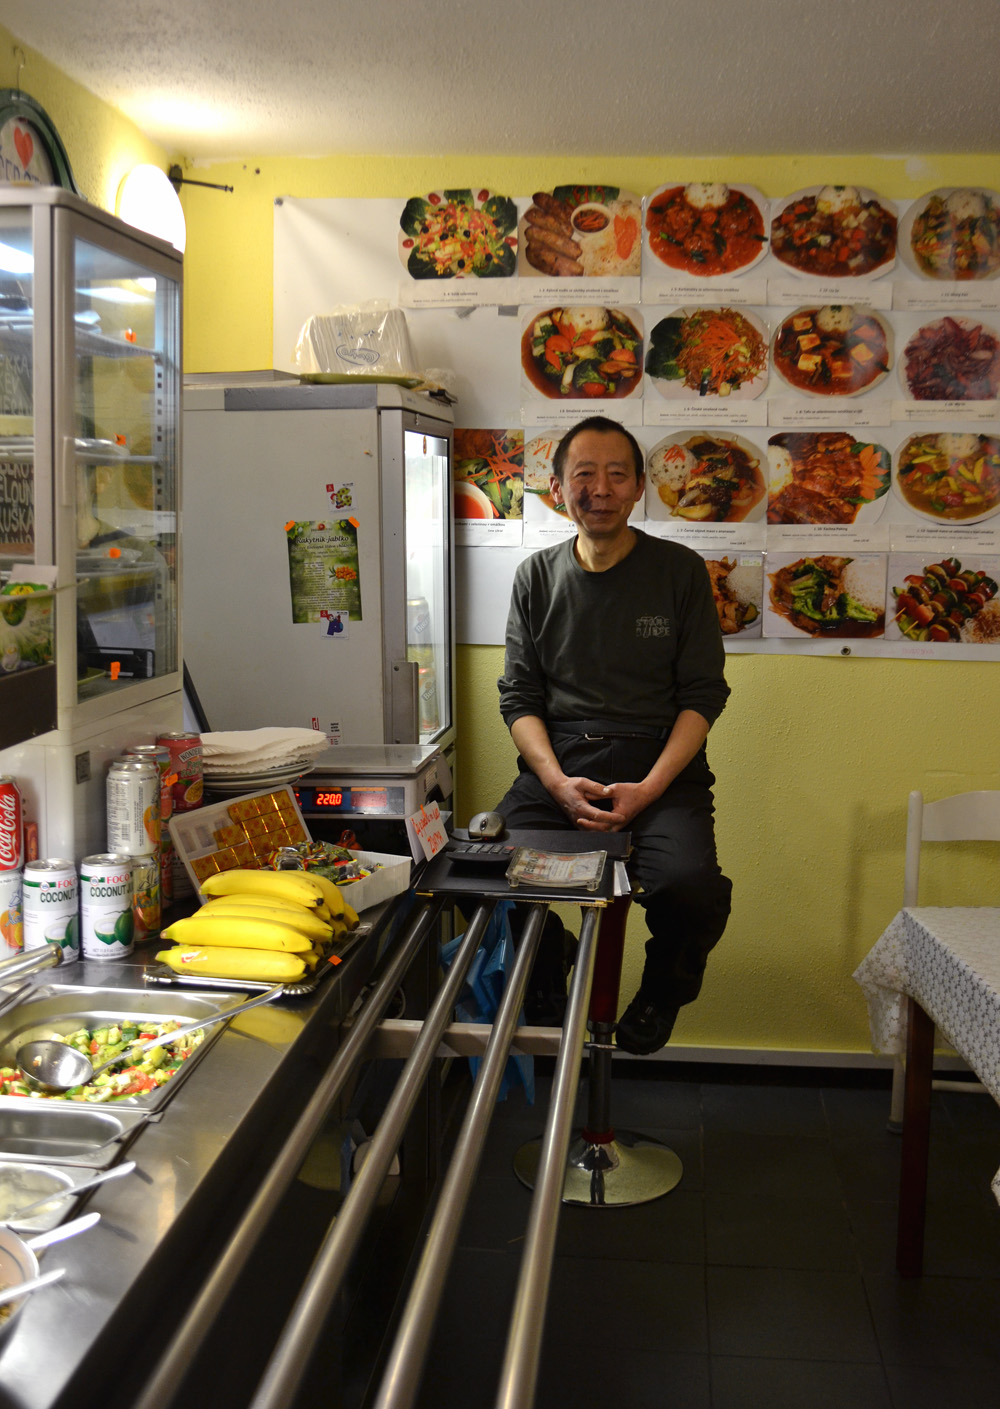 Jian Guo Chen in his vegan restaurant Vegetka. Photo: Barbora Sajmovicova, 2016, Prague.